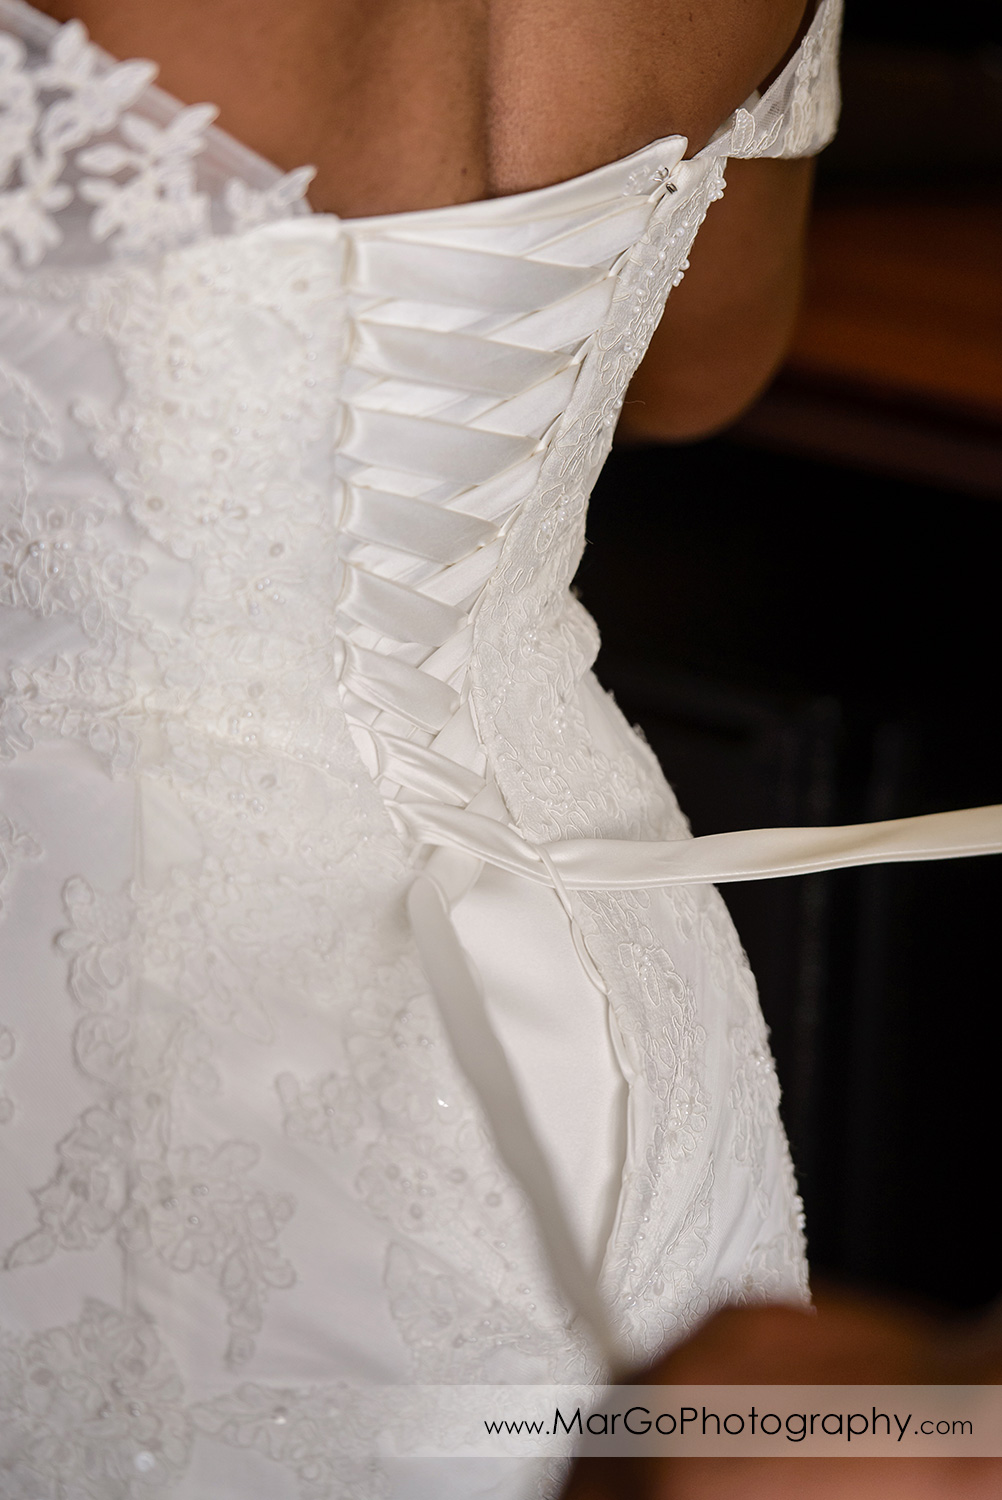 lacing up the wedding dress at Best Western Plus Delta Inn & Suites in Oakley